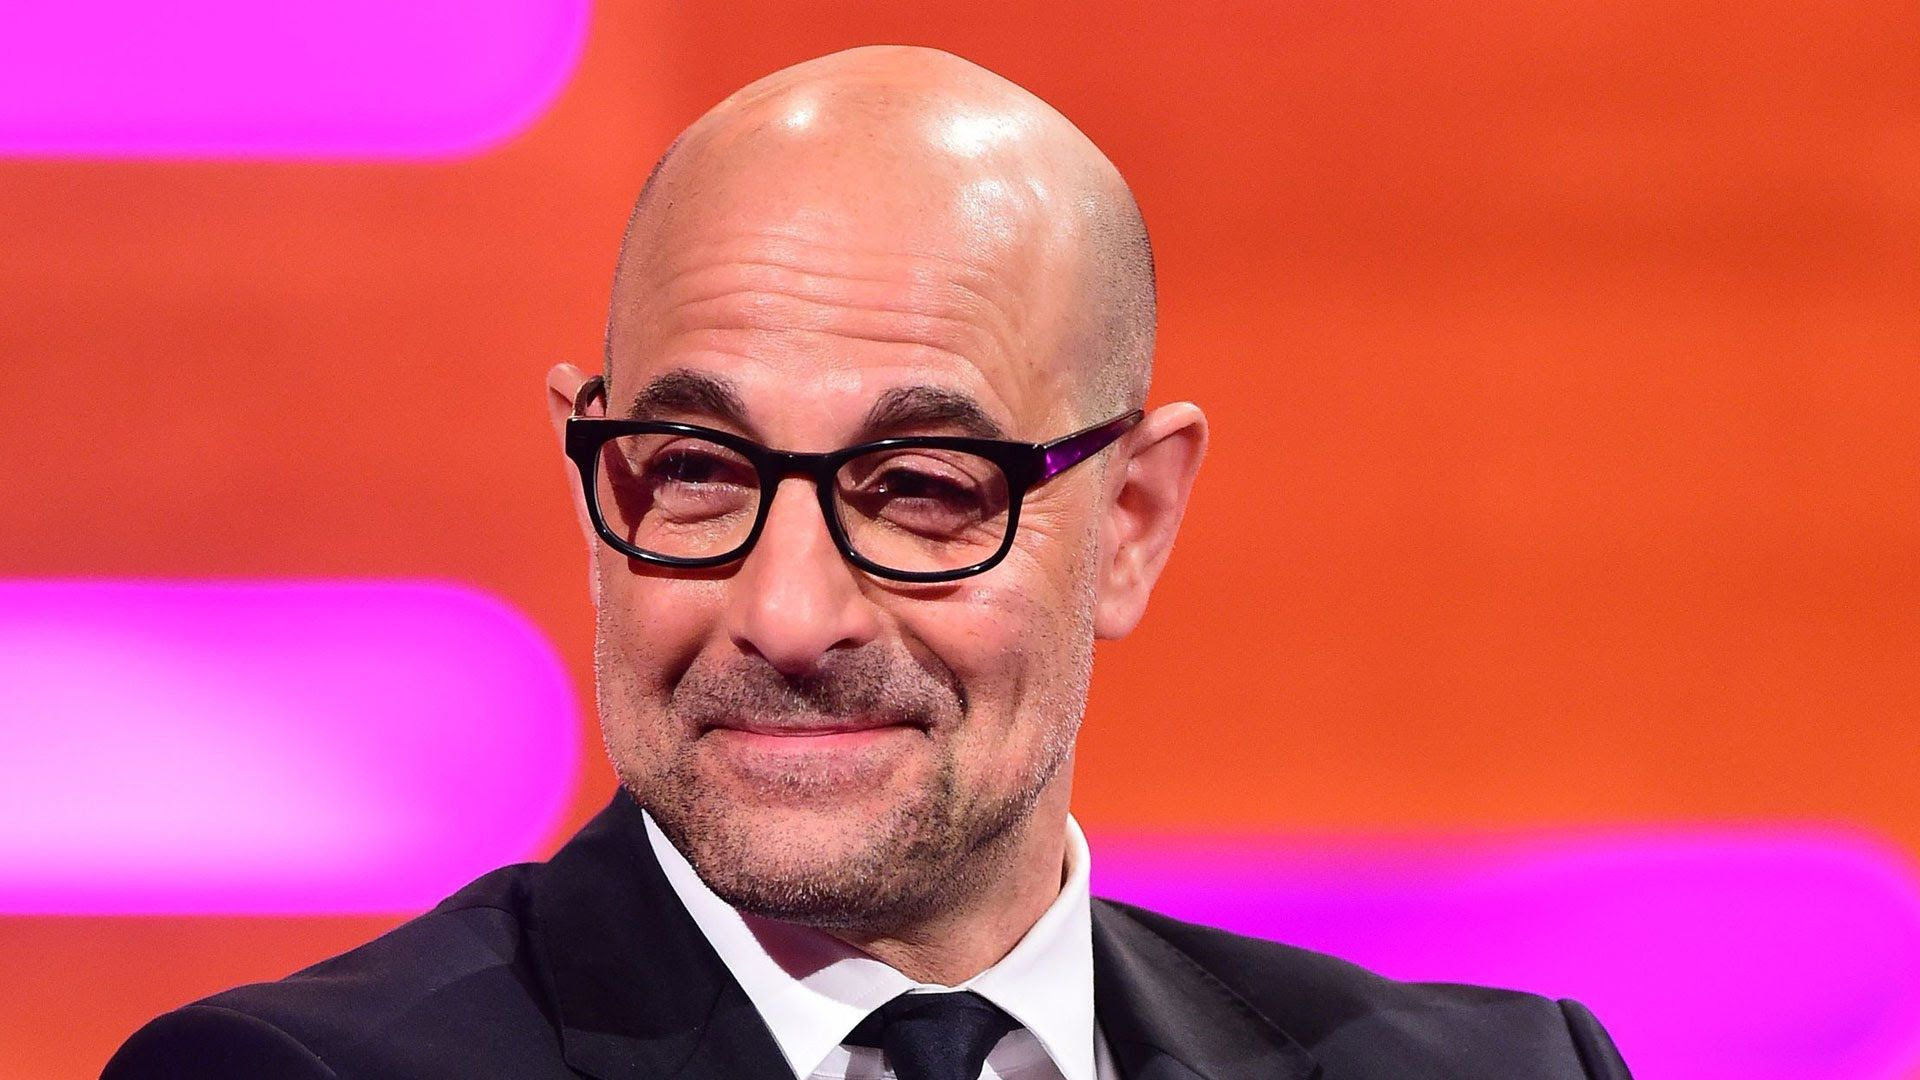 Stanley Tucci Glasses Wallpaper 58729 1920x1080 px ~ HDWallSource.com